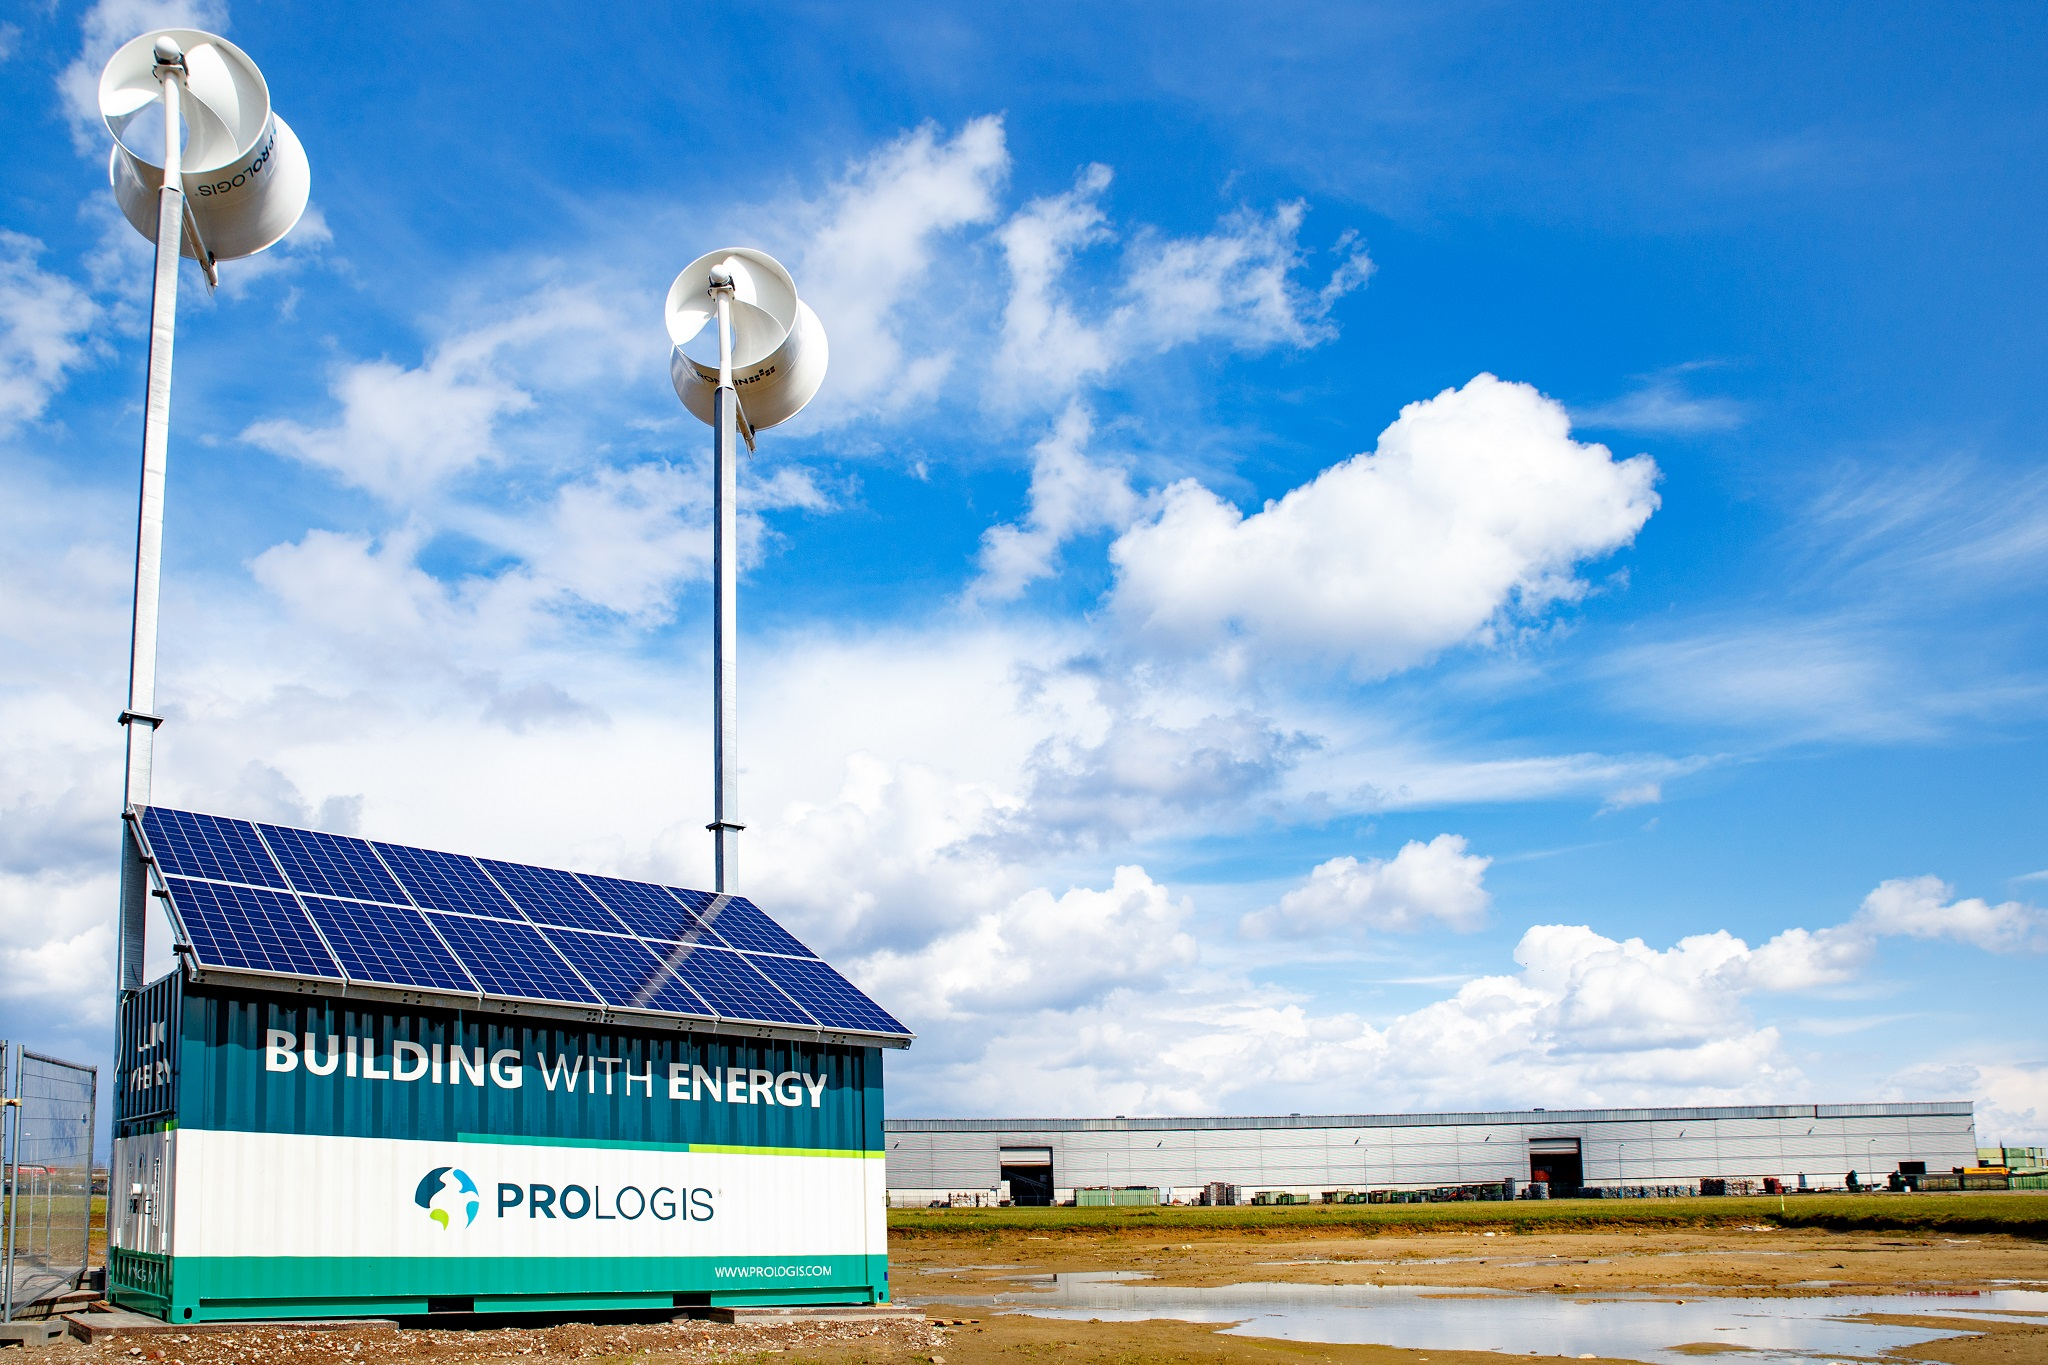 Prologis Energy Container